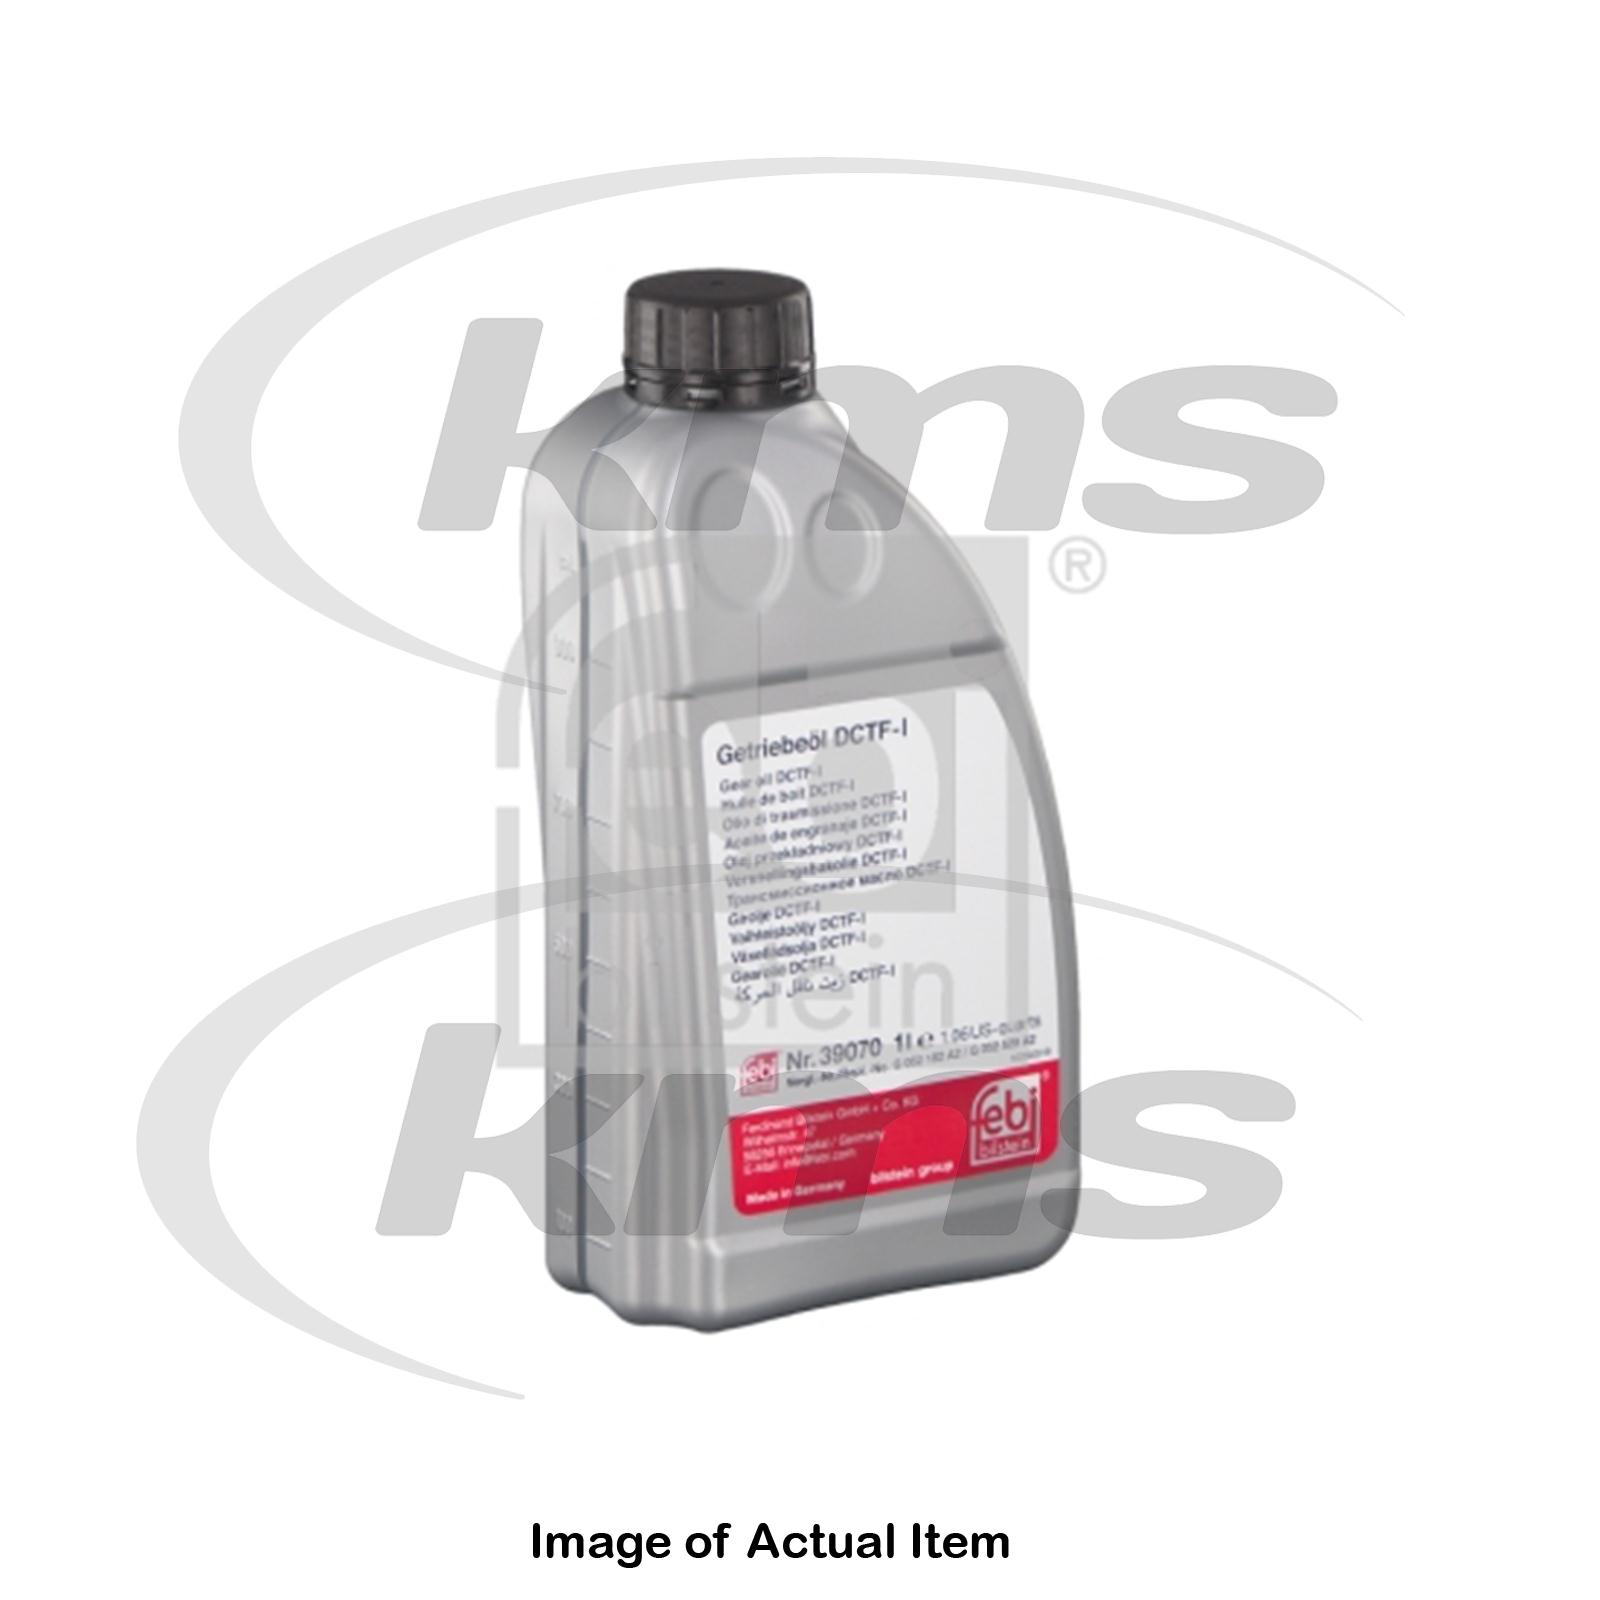 benz htm large extra trans and transmission mercedes fluid image automatic techarticles change filter